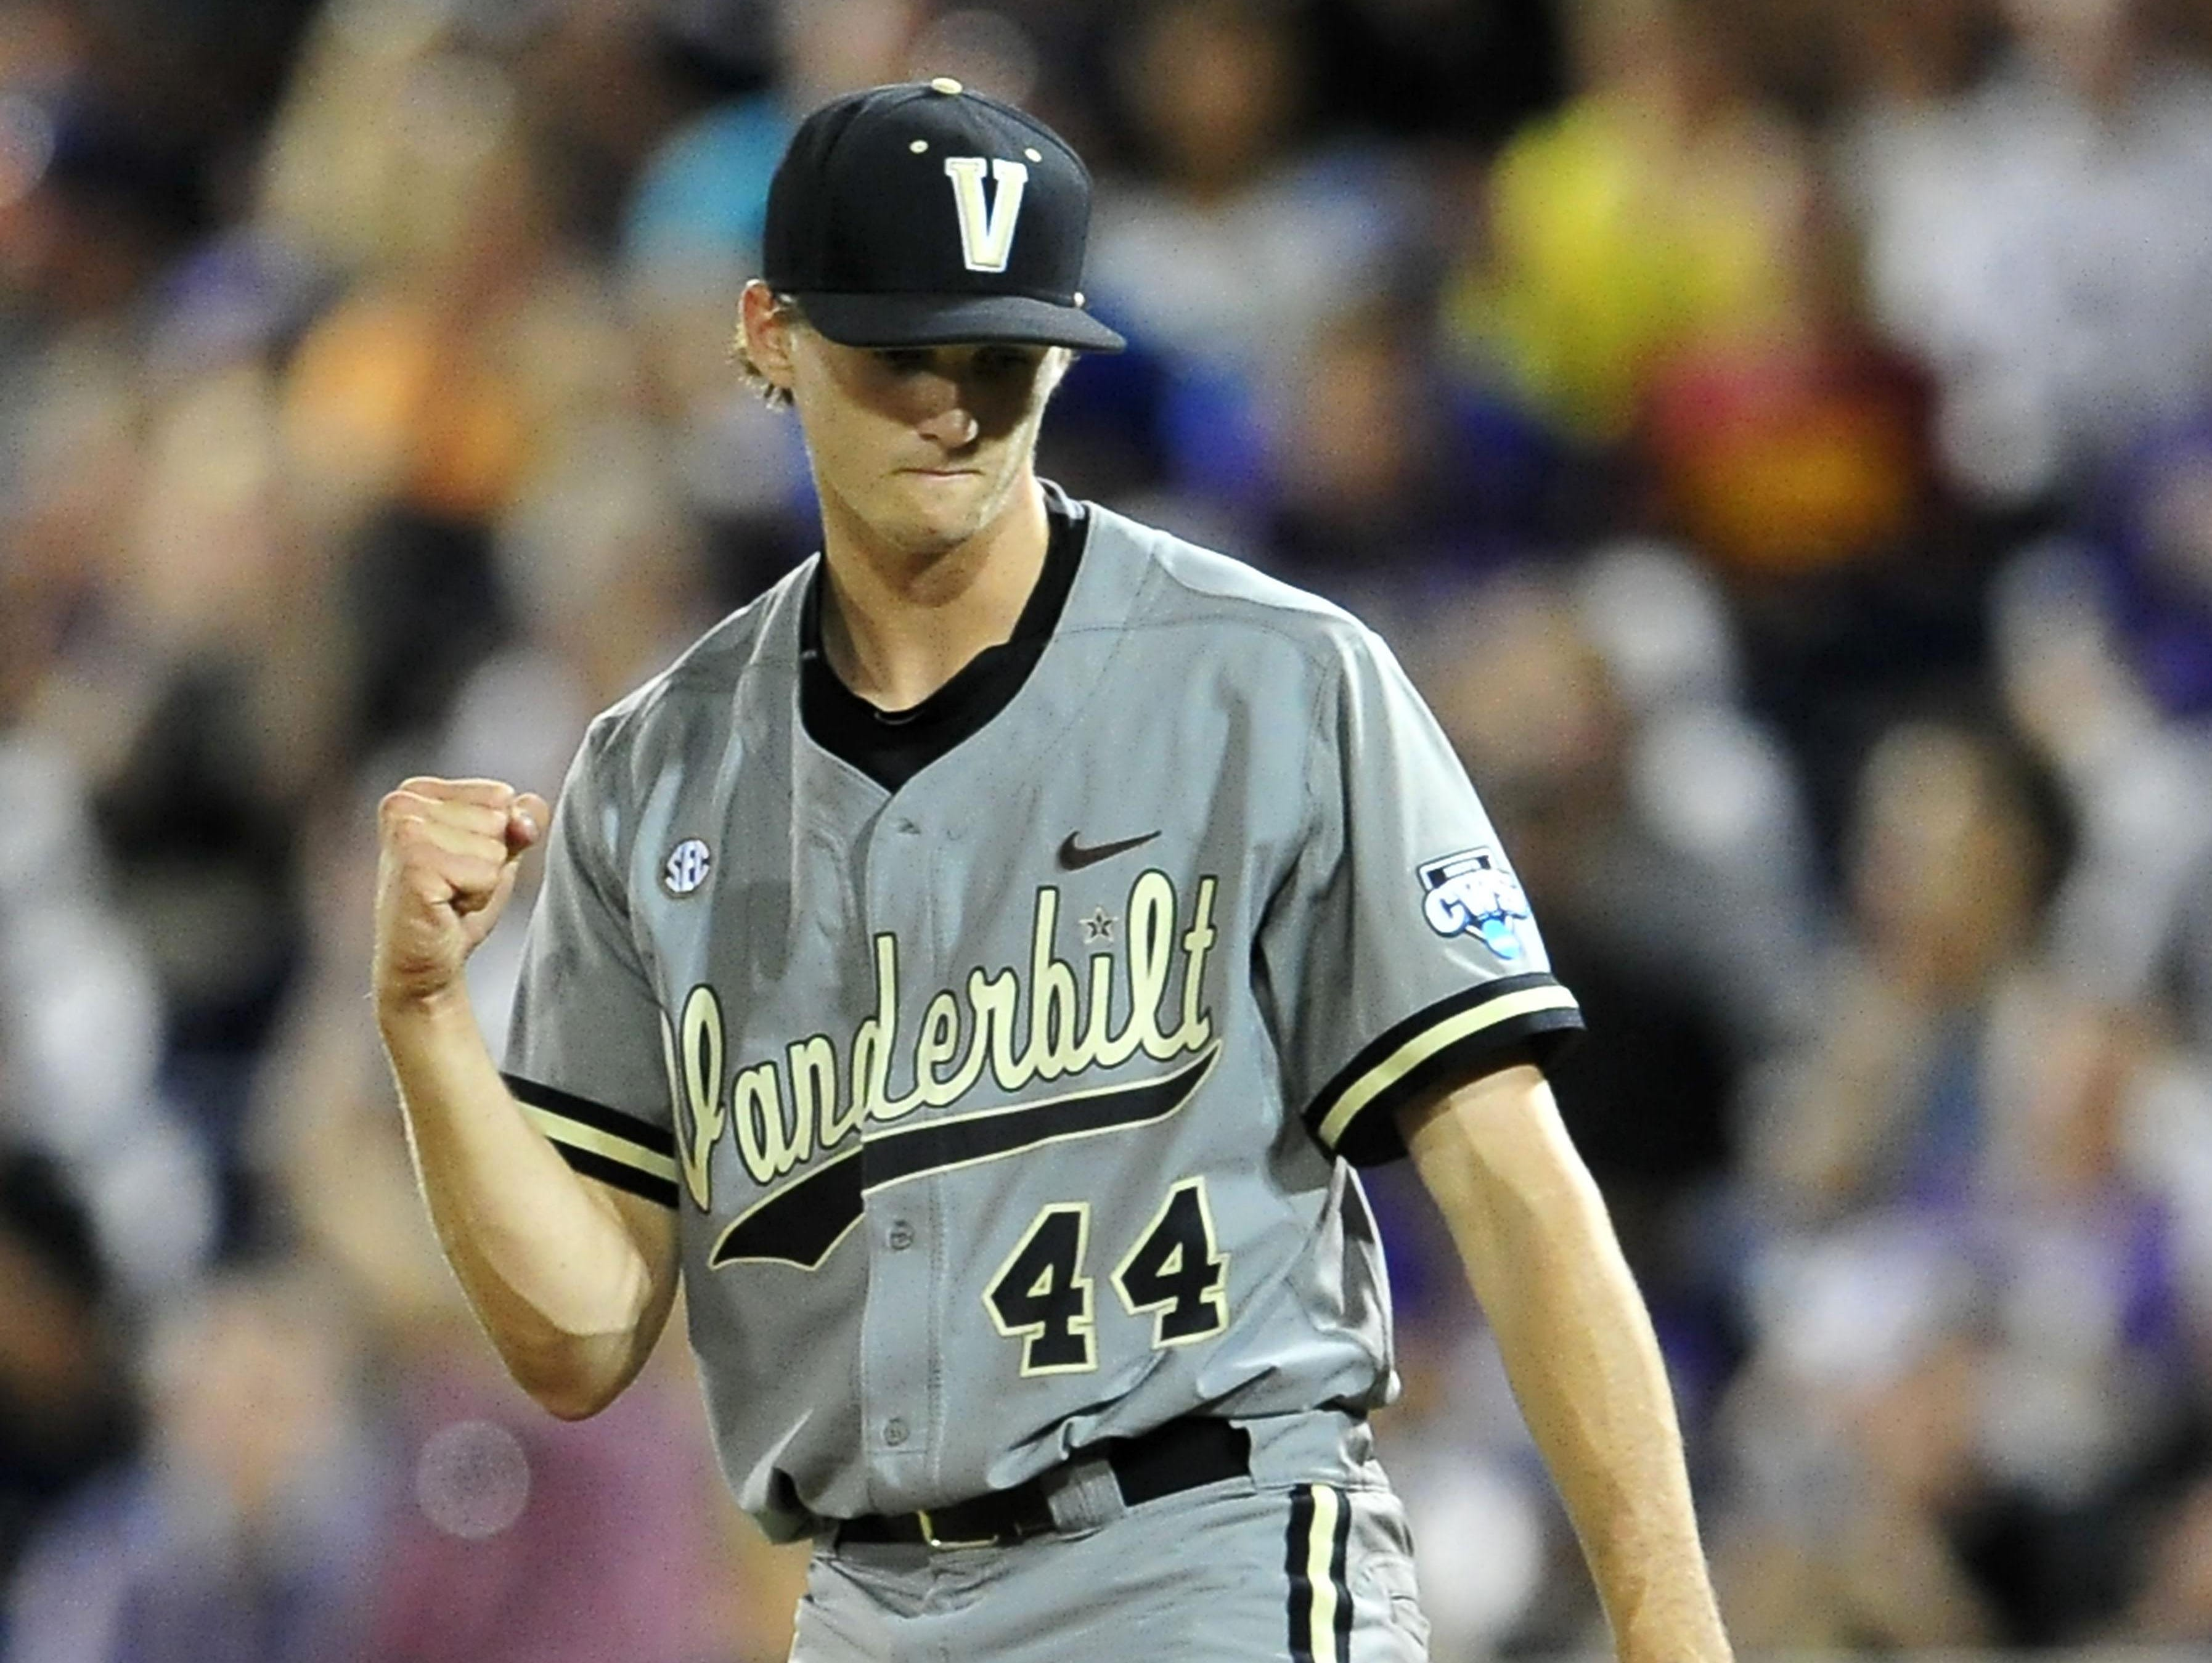 Vanderbilt pitcher Kyle Wright pumps his fist after defeating TCU 1-0 during the College World Series on Tuesday. The Commodores have allowed only three runs in 18 innings.